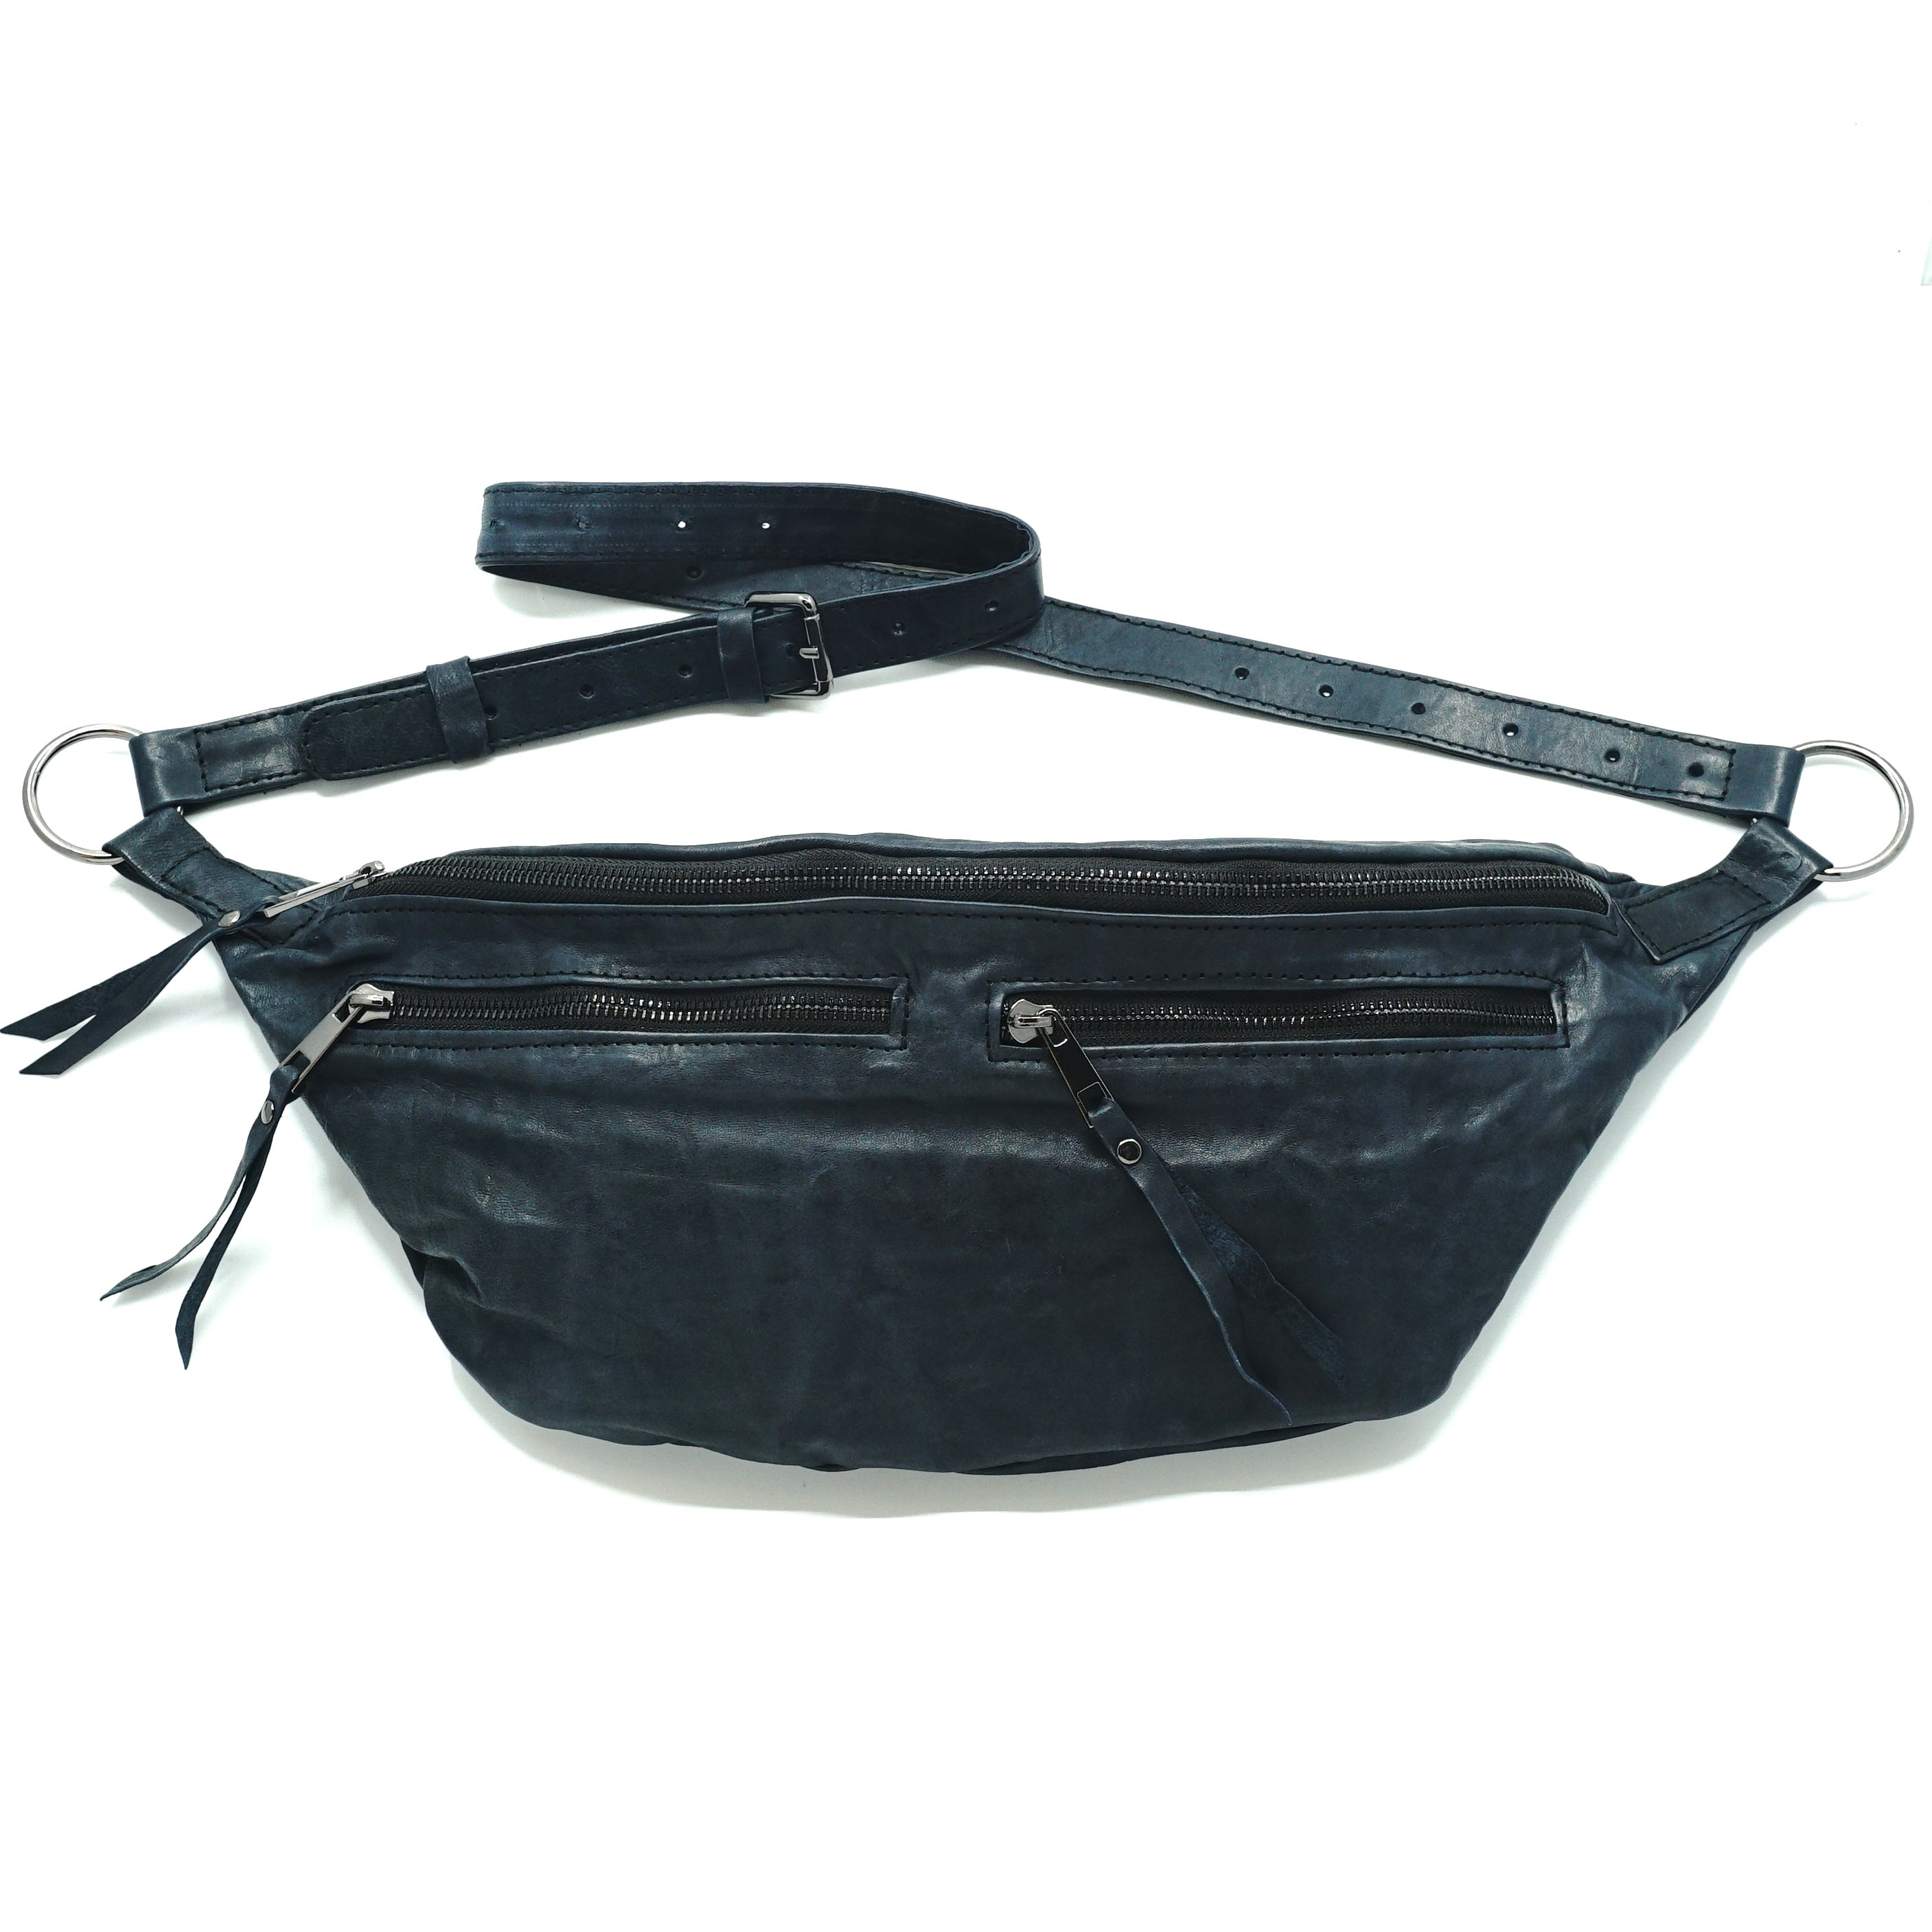 The Everywhere Bag #10 — Deep Slate Blue with Gunmetal